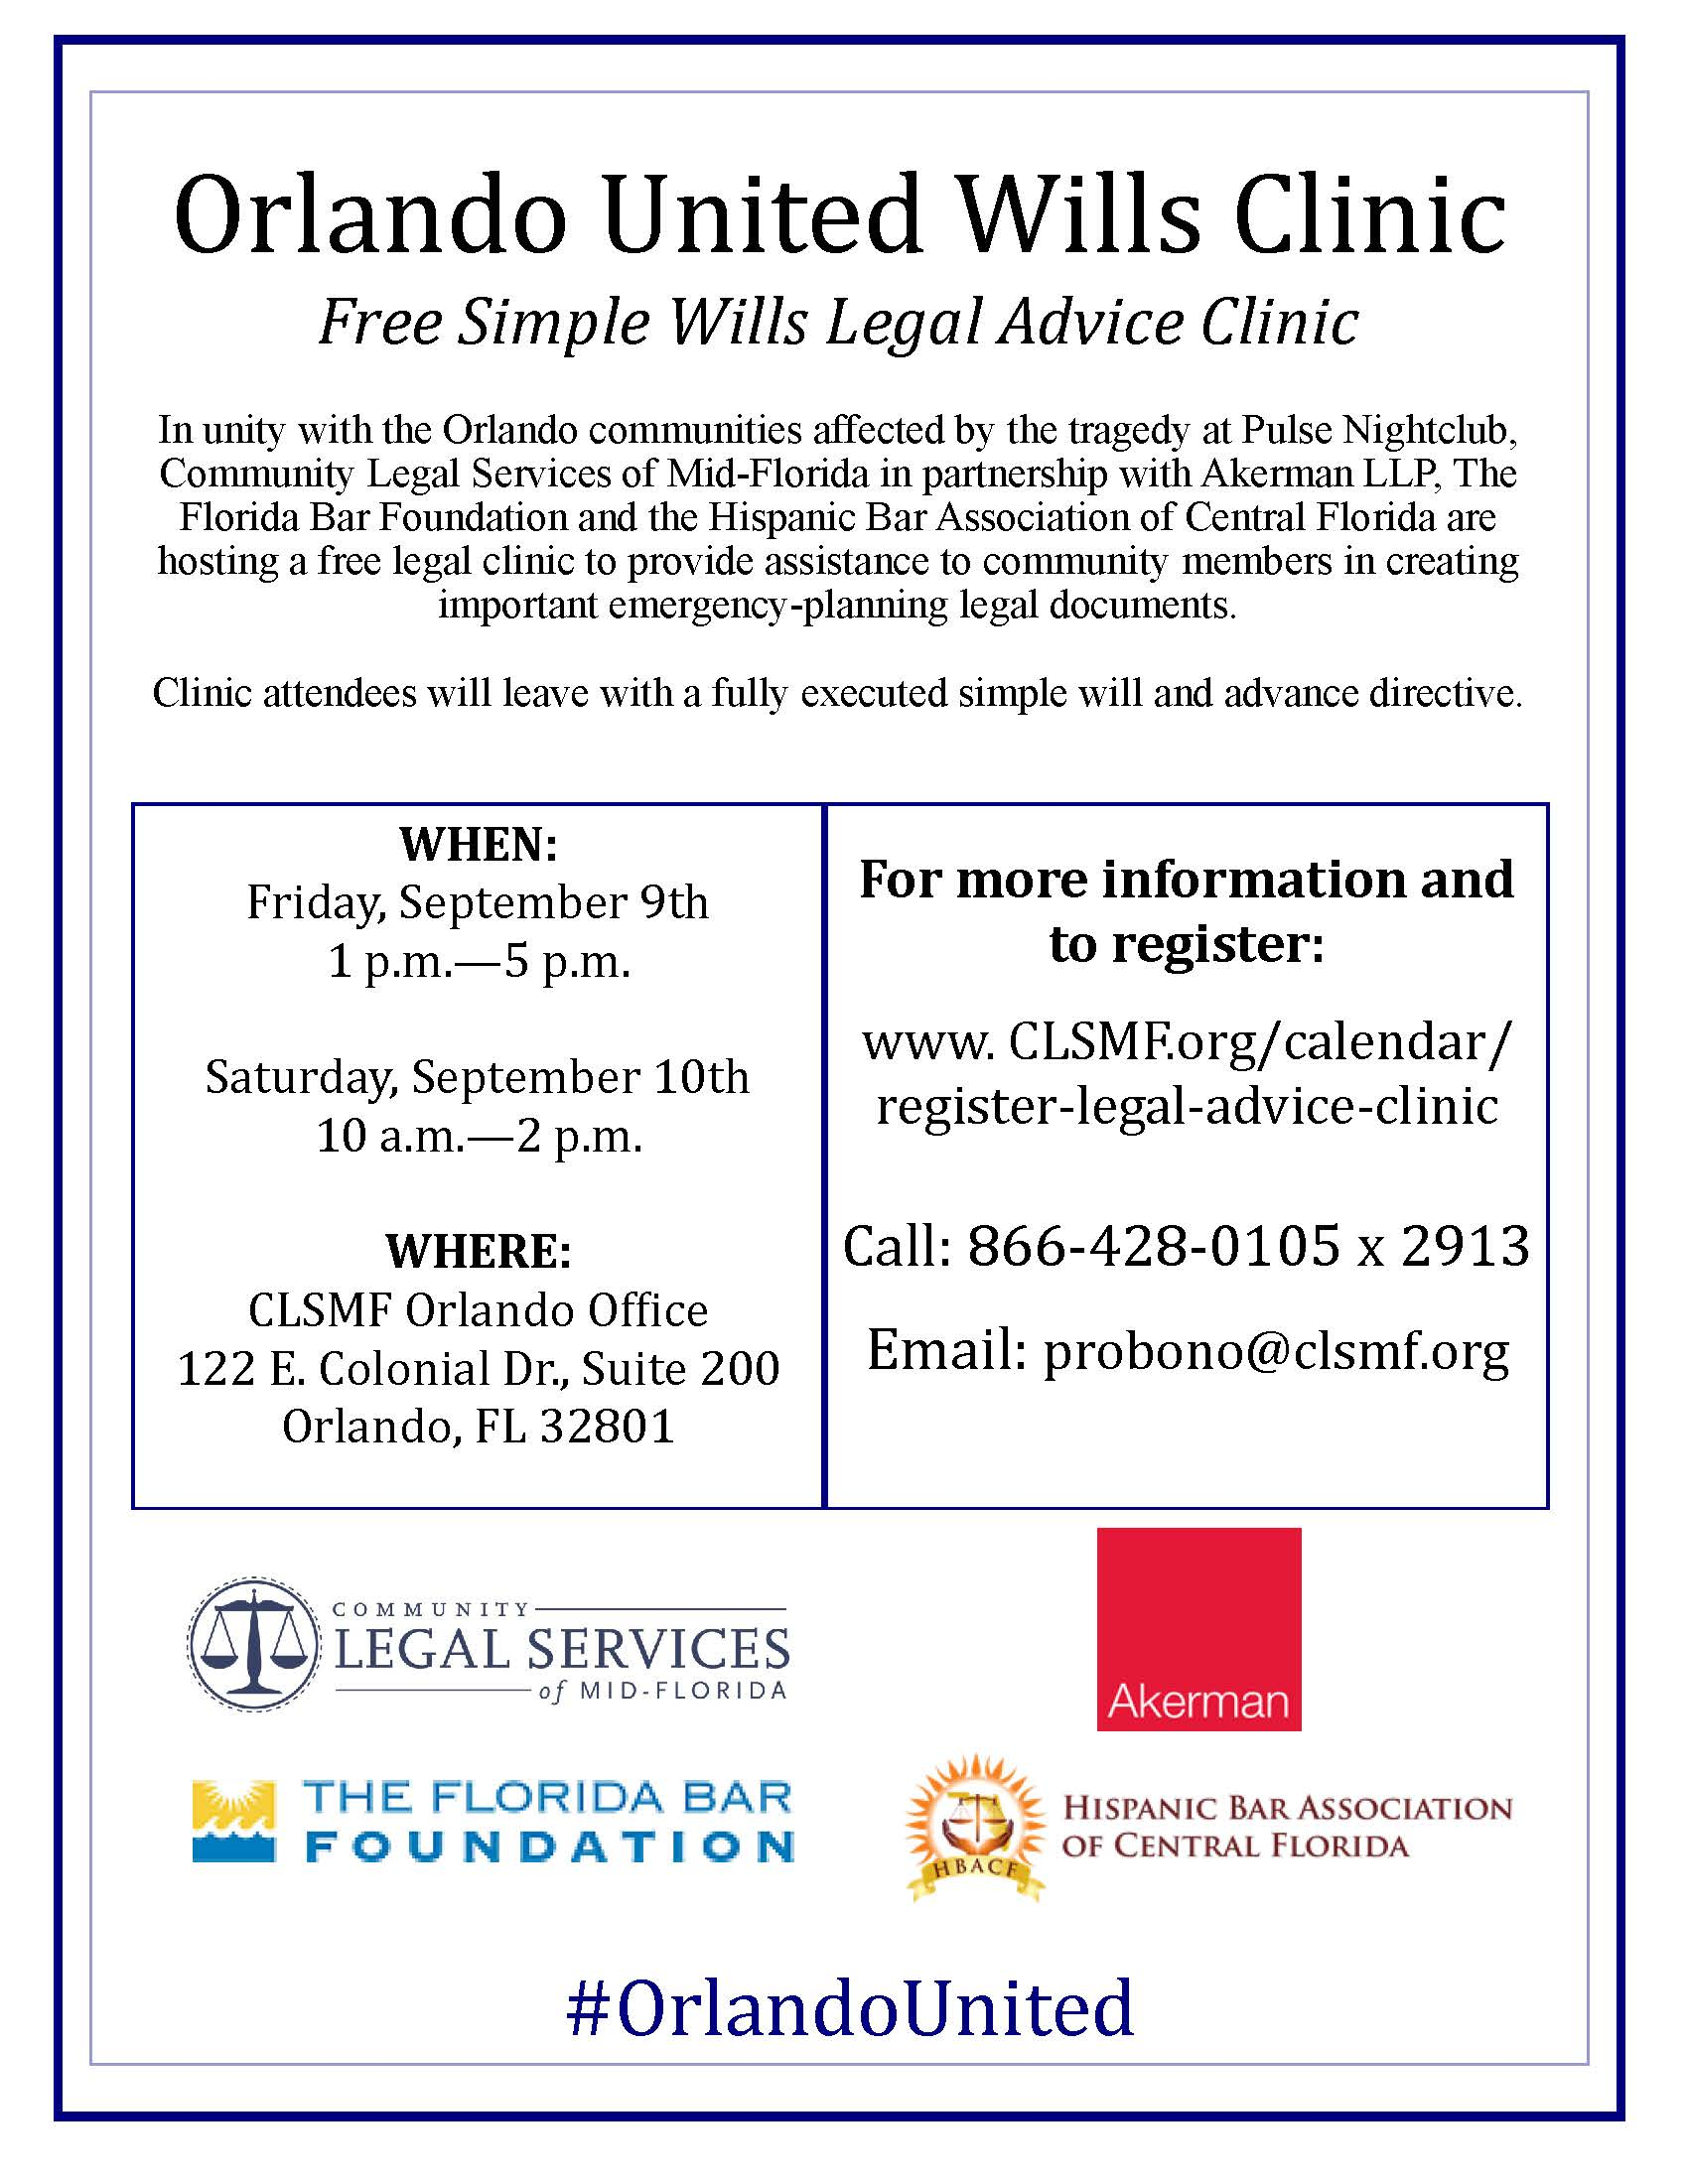 Community Legal Services Of Mid Florida Clsmf In Partnership With Akerman Llp The Bar Foundation And Hispanic Ociation Central